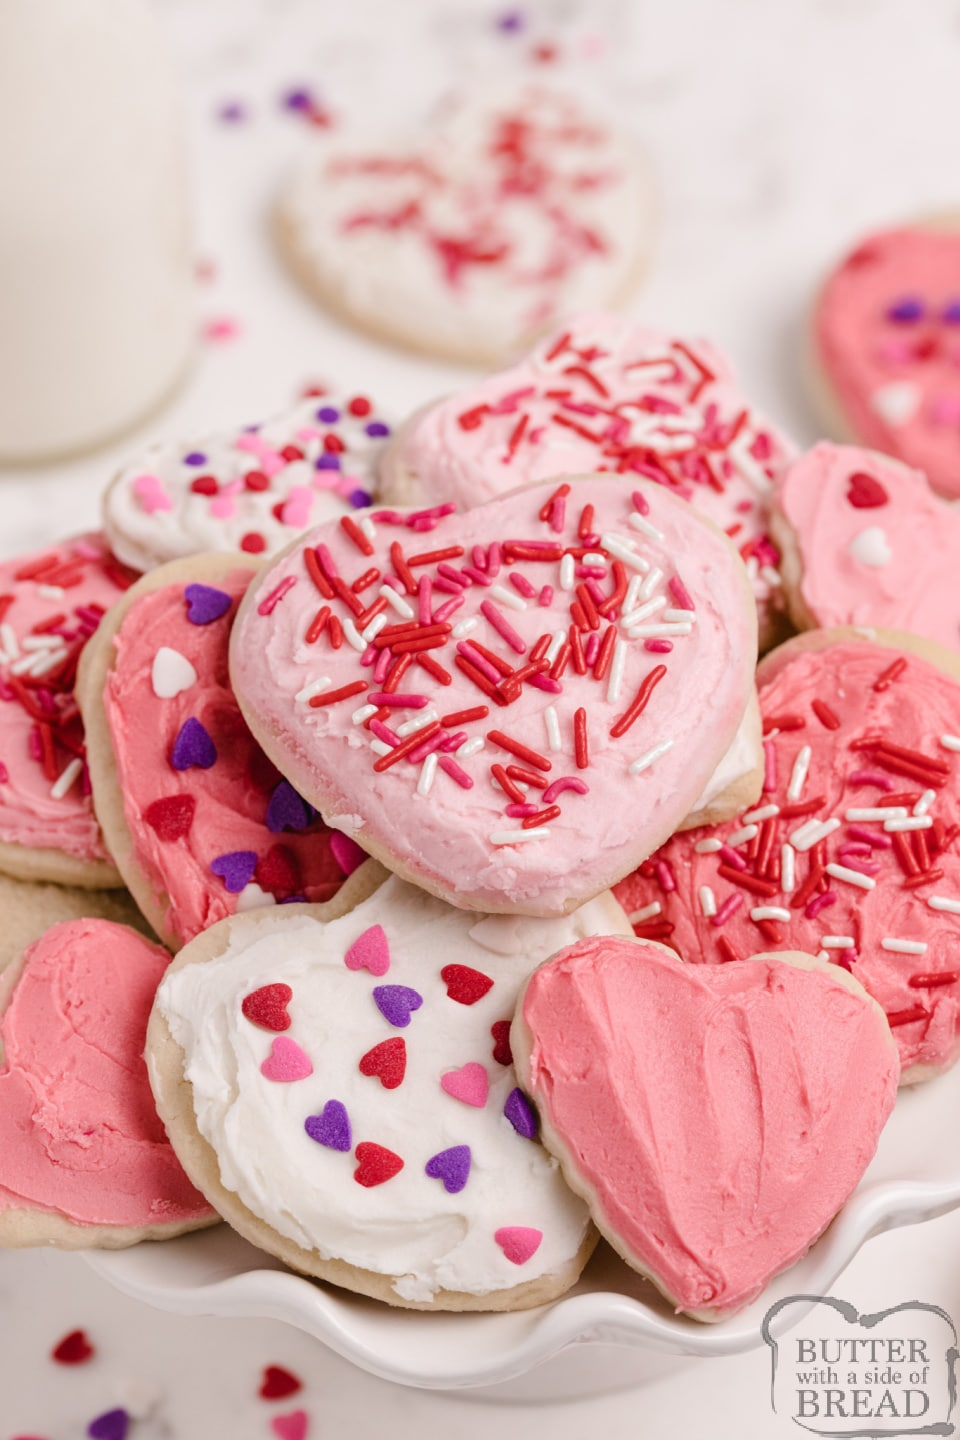 Valentines Sugar Cookiesare soft, thick and easily thebest sugar cookie recipe I've ever tried. These cream cheese sugar cookies are perfectly sweet and they hold their shape when baked!